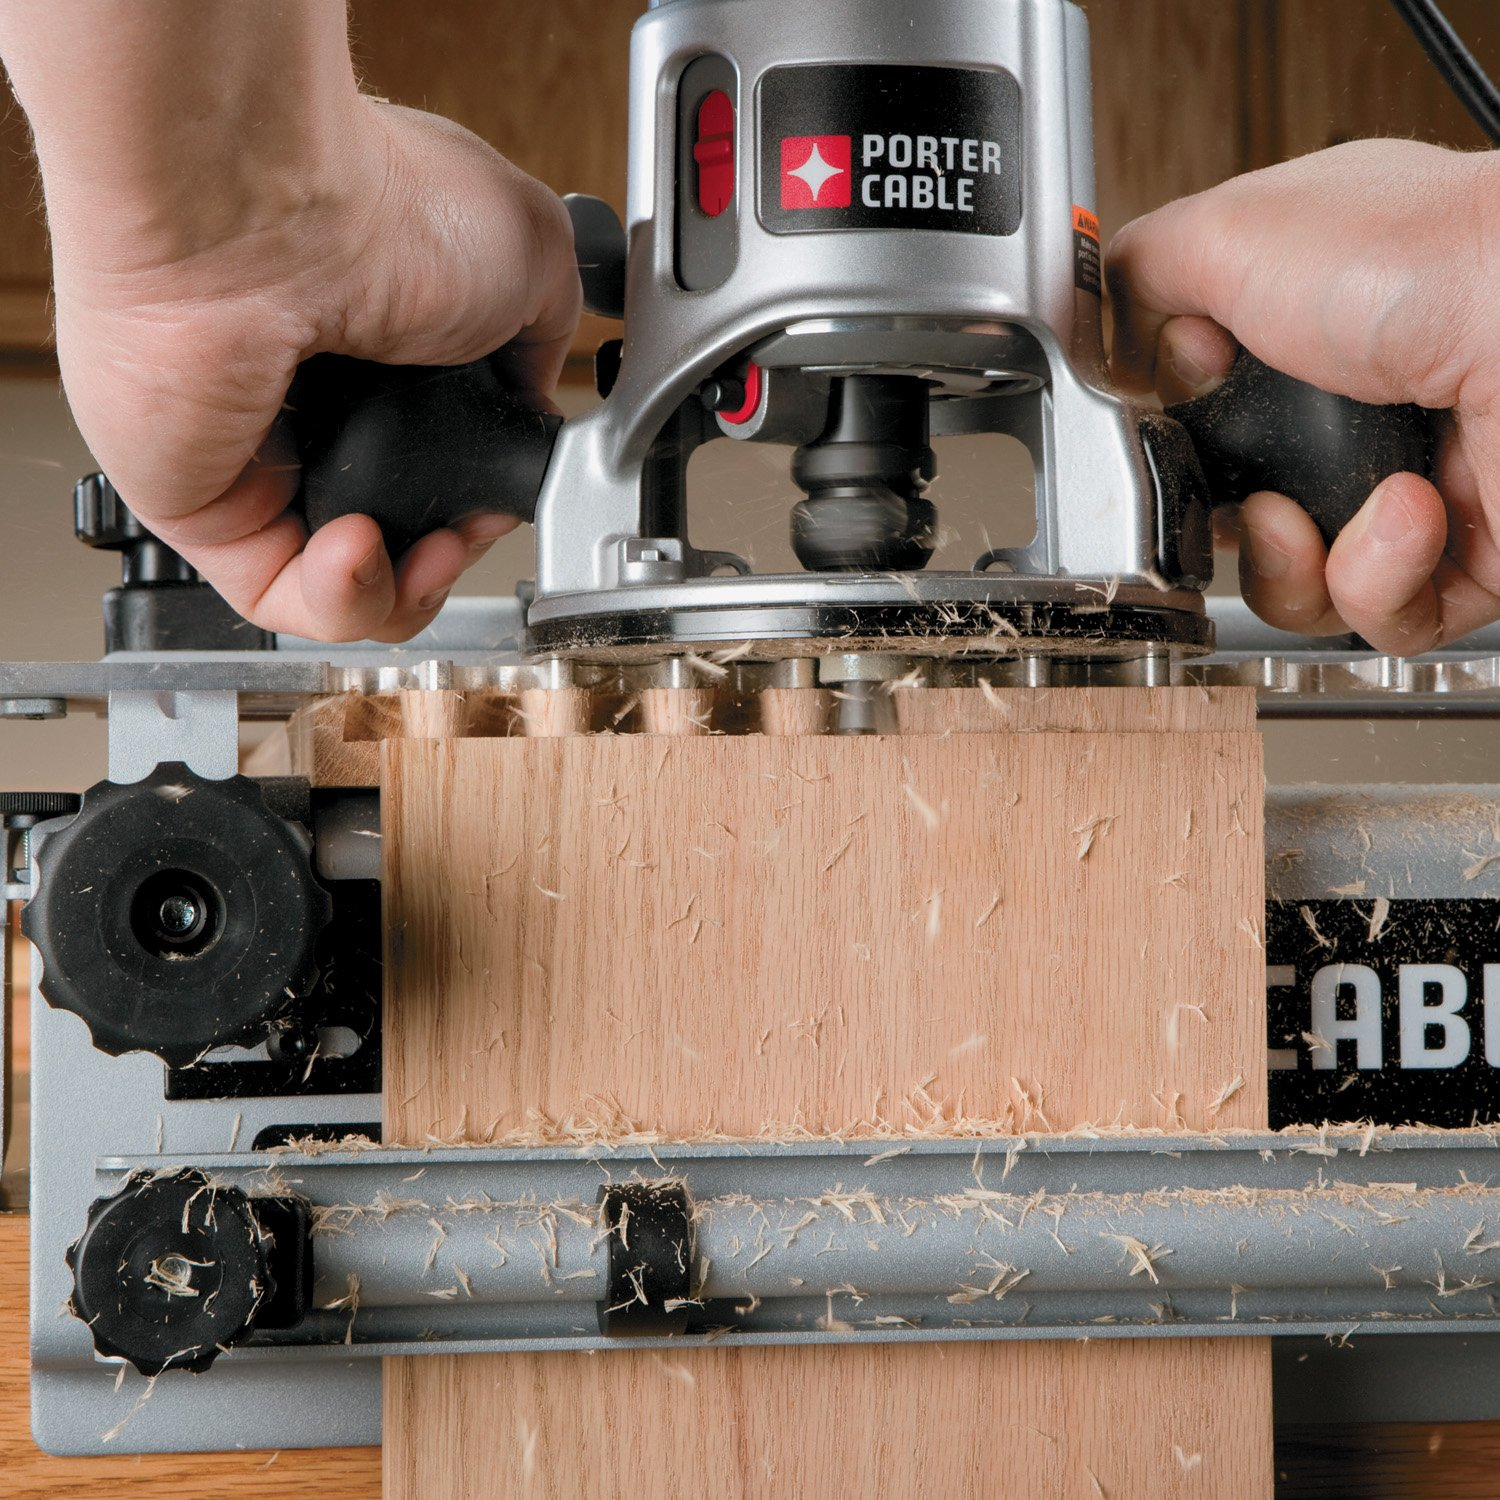 PORTER-CABLE 4210 12-Inch Dovetail Jig Tools & Home Improvement ...